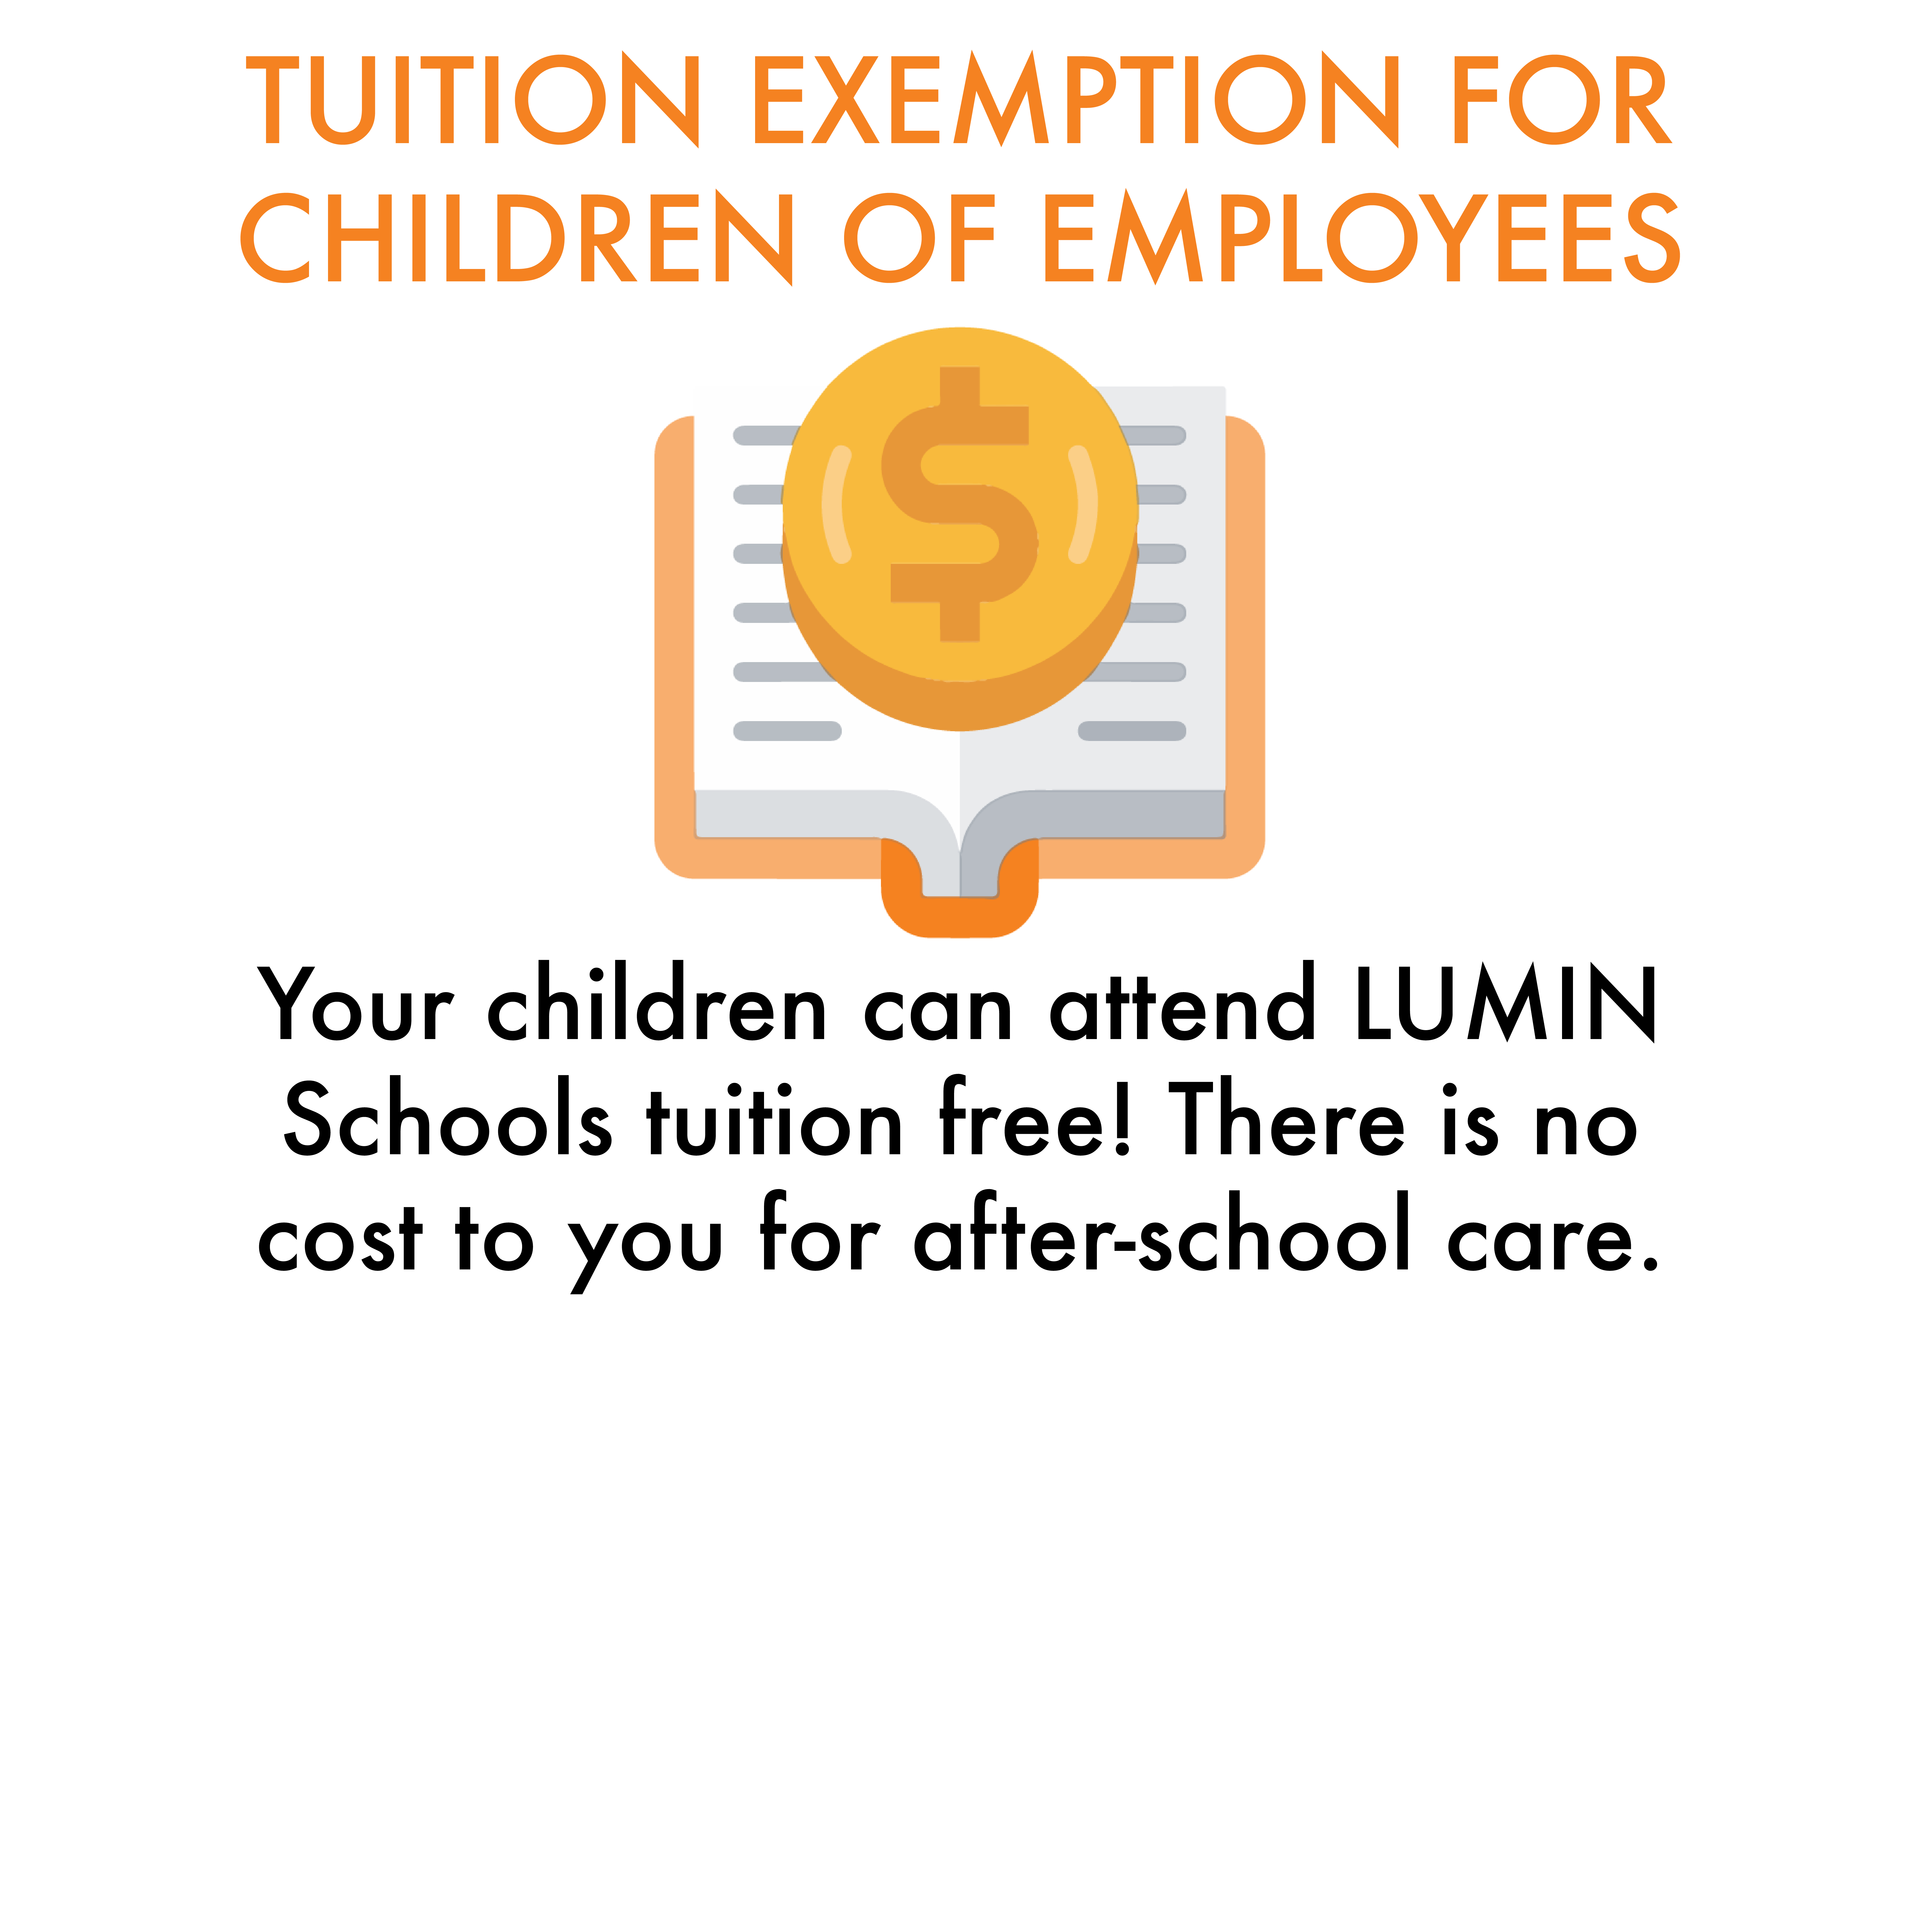 Tuition Exemption for Children of Employees: Your children can attend LUMIN Schools tuition free! There is no cost to you for after-school care.